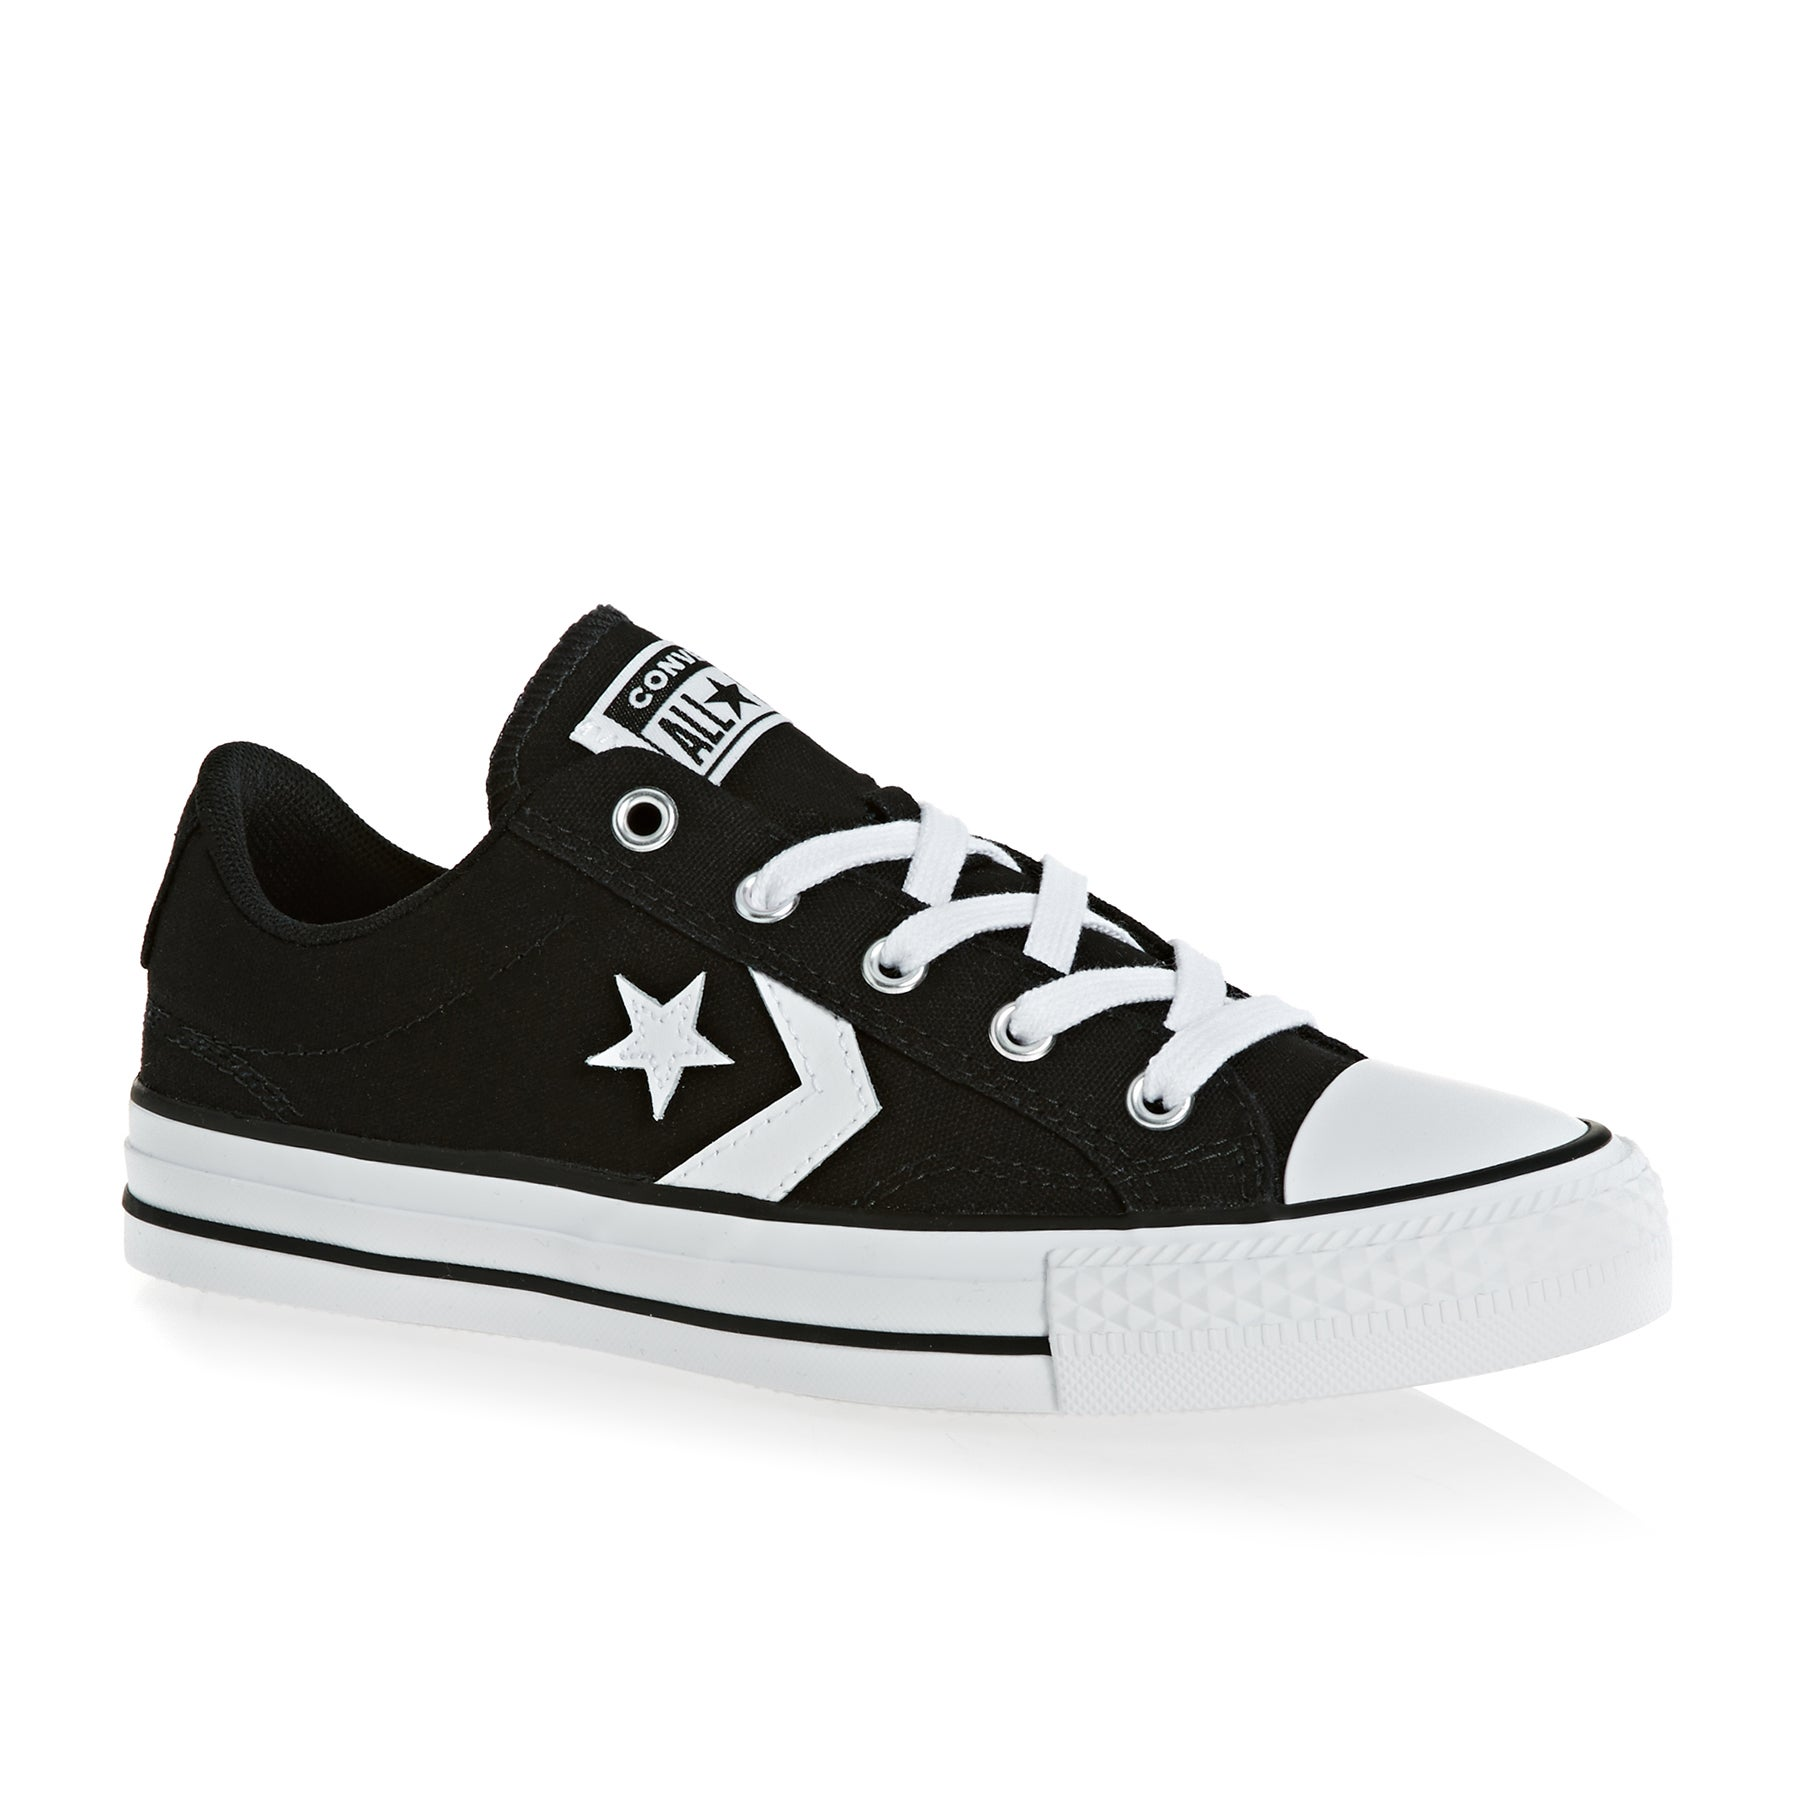 Converse Classic Star Player Ox Shoes